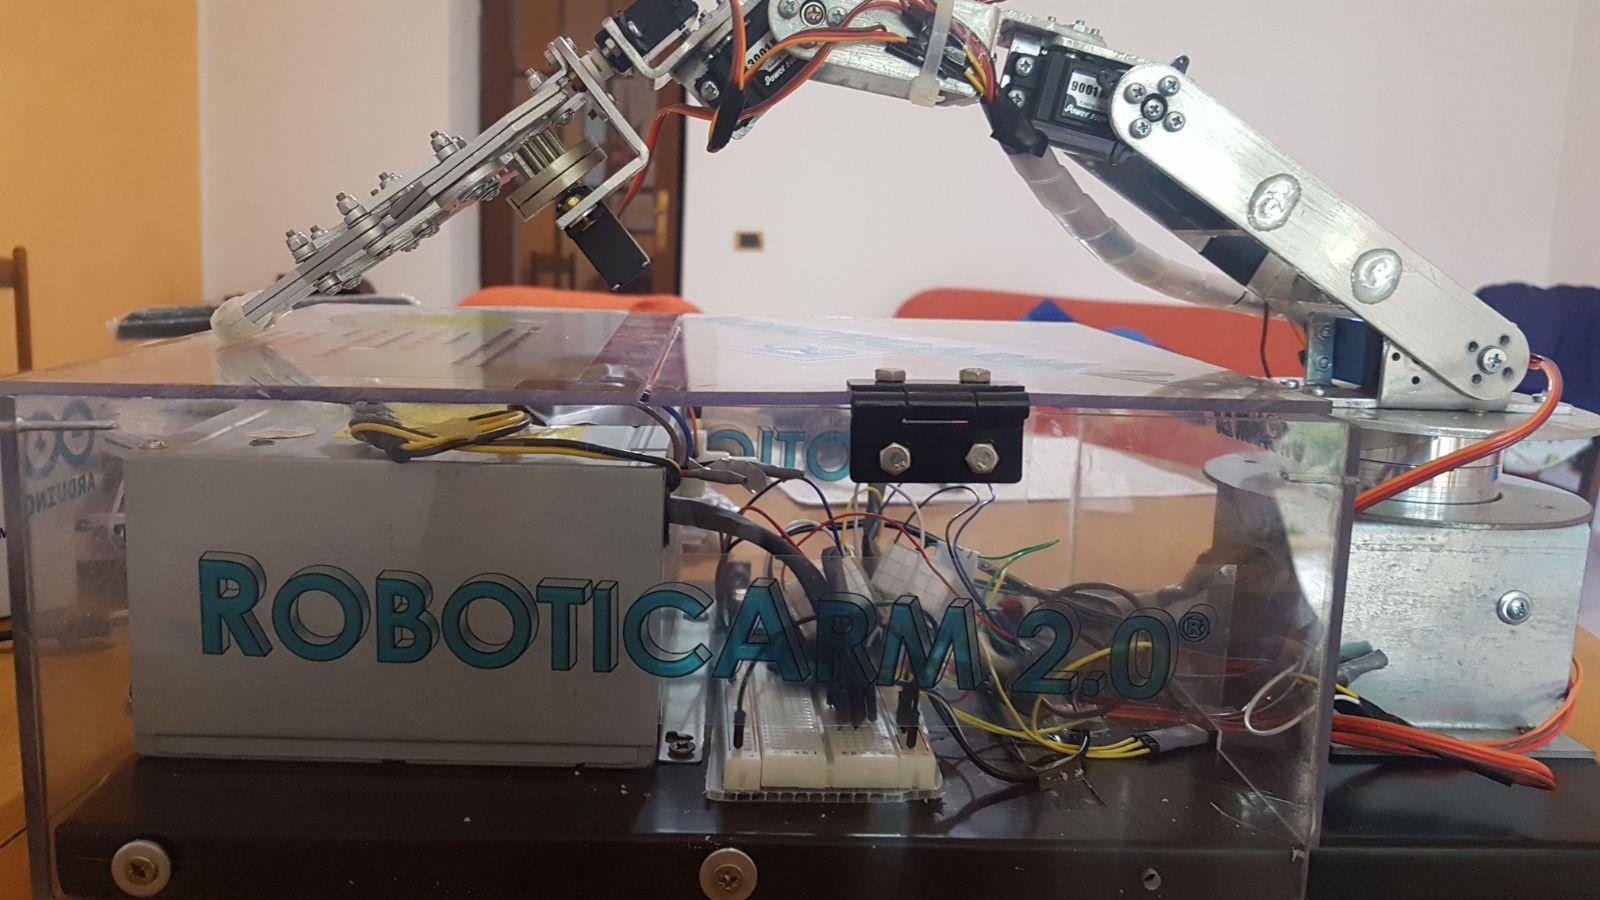 Mobile robots by Microcontroller technology